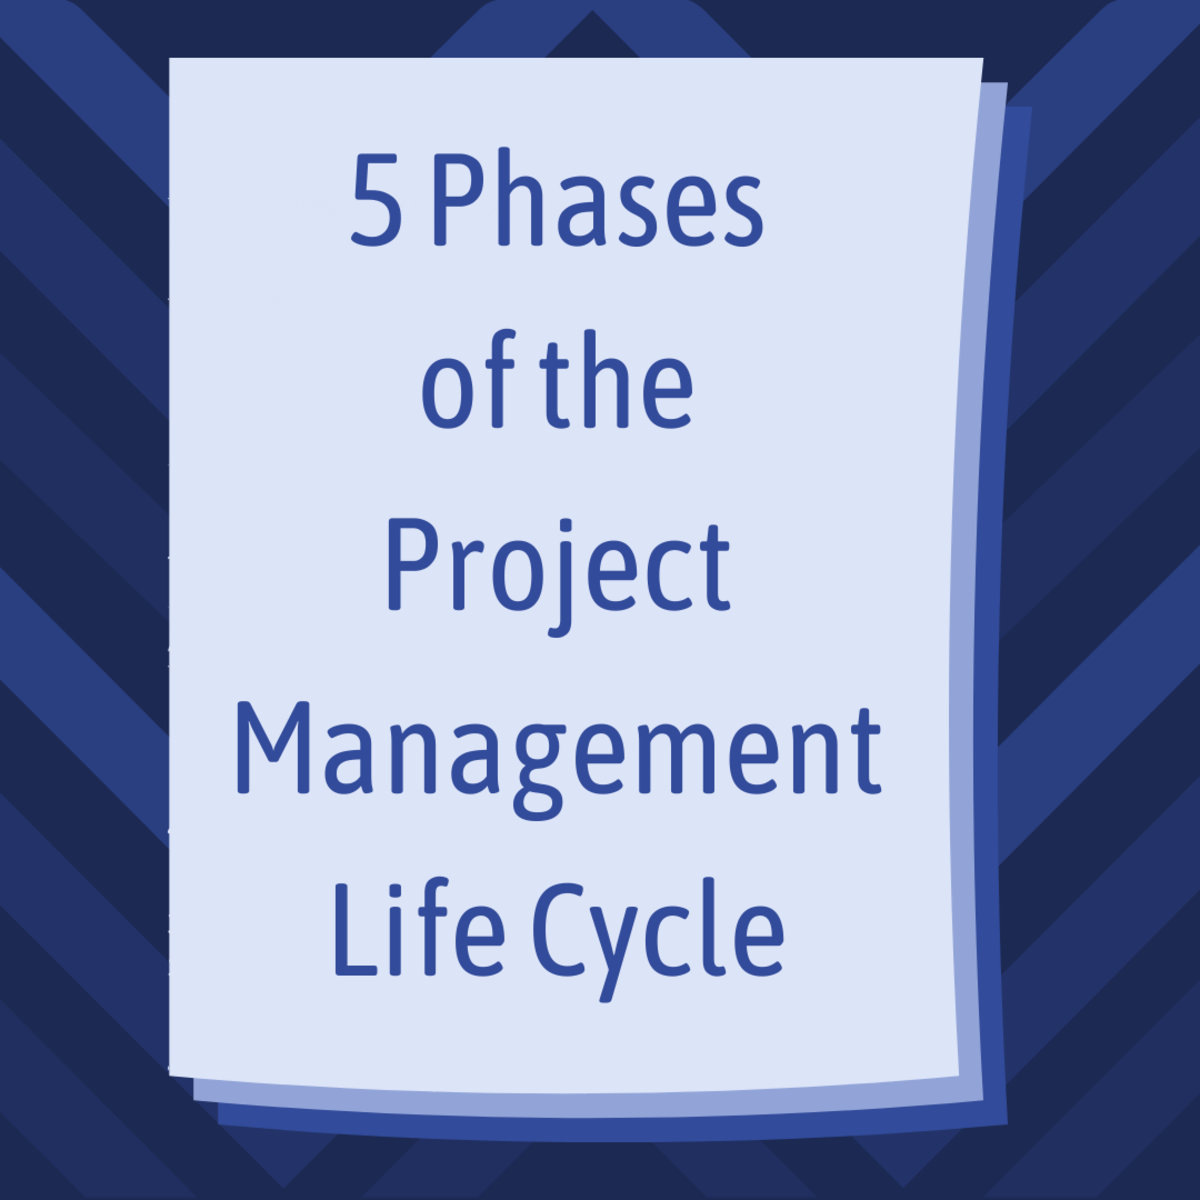 Explore the phases of the project management life cycle, from initiating to closing.